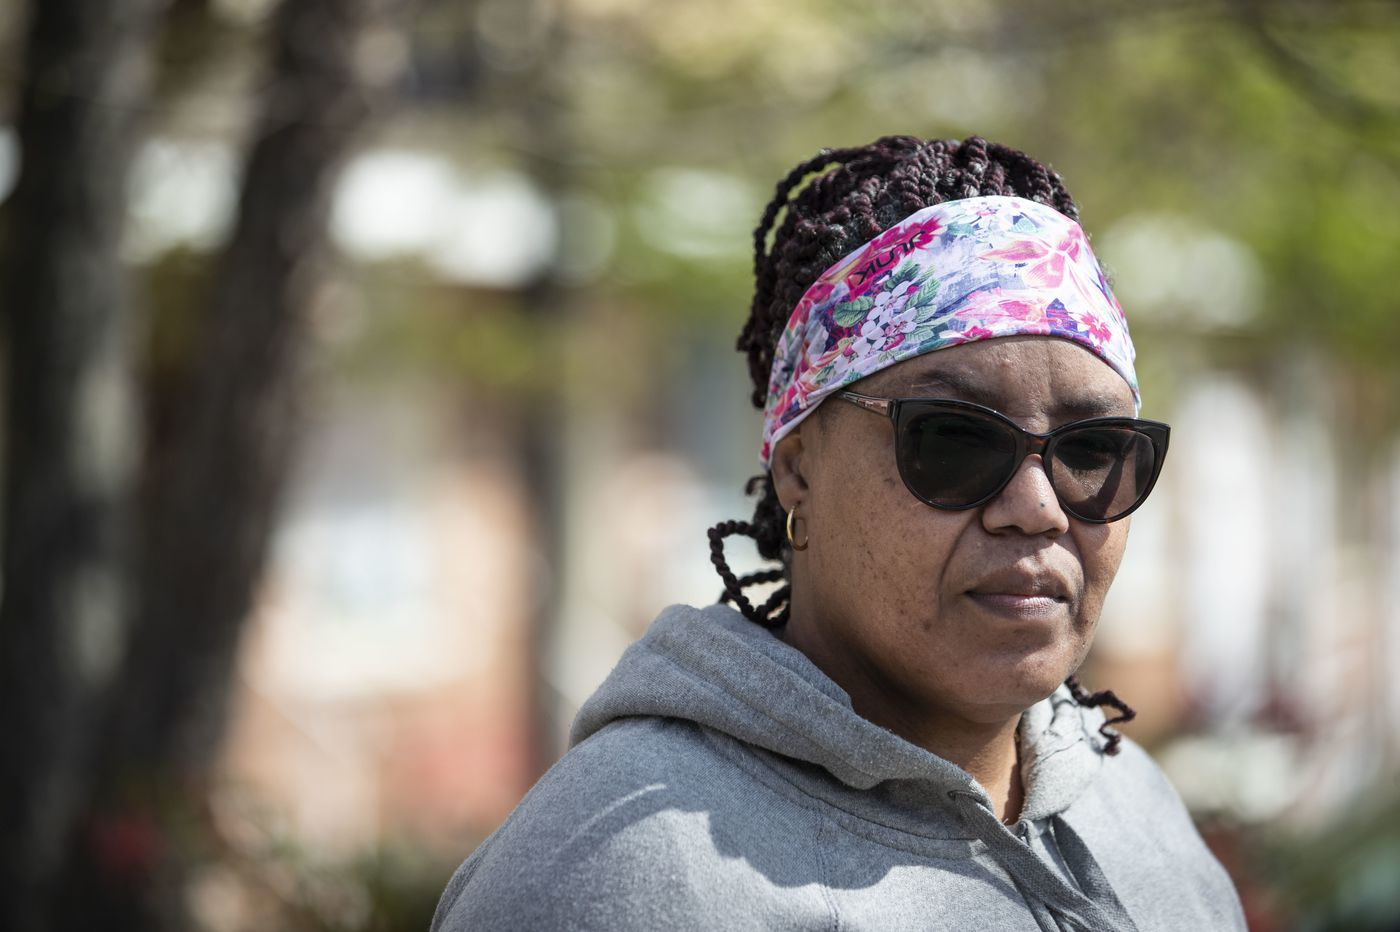 'It's like we are just a piece of garbage': Laid-off Philly workers face life without health insurance